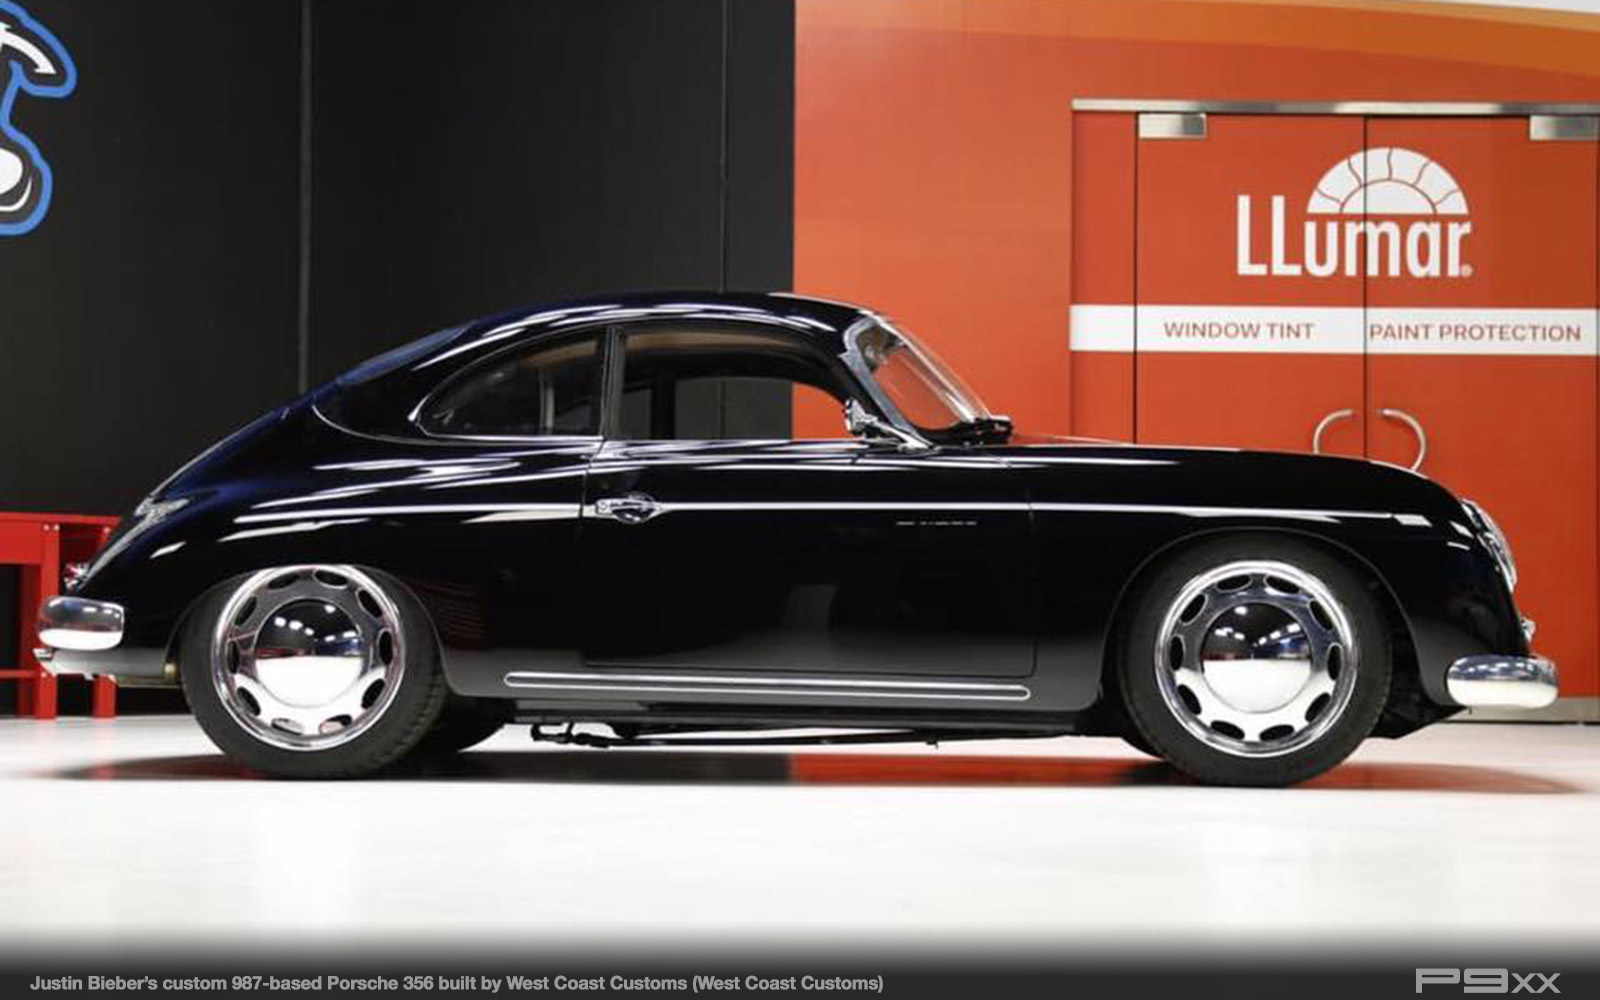 west coast customs builds 356 body 987 2 likely for justin bieber p9xx. Black Bedroom Furniture Sets. Home Design Ideas